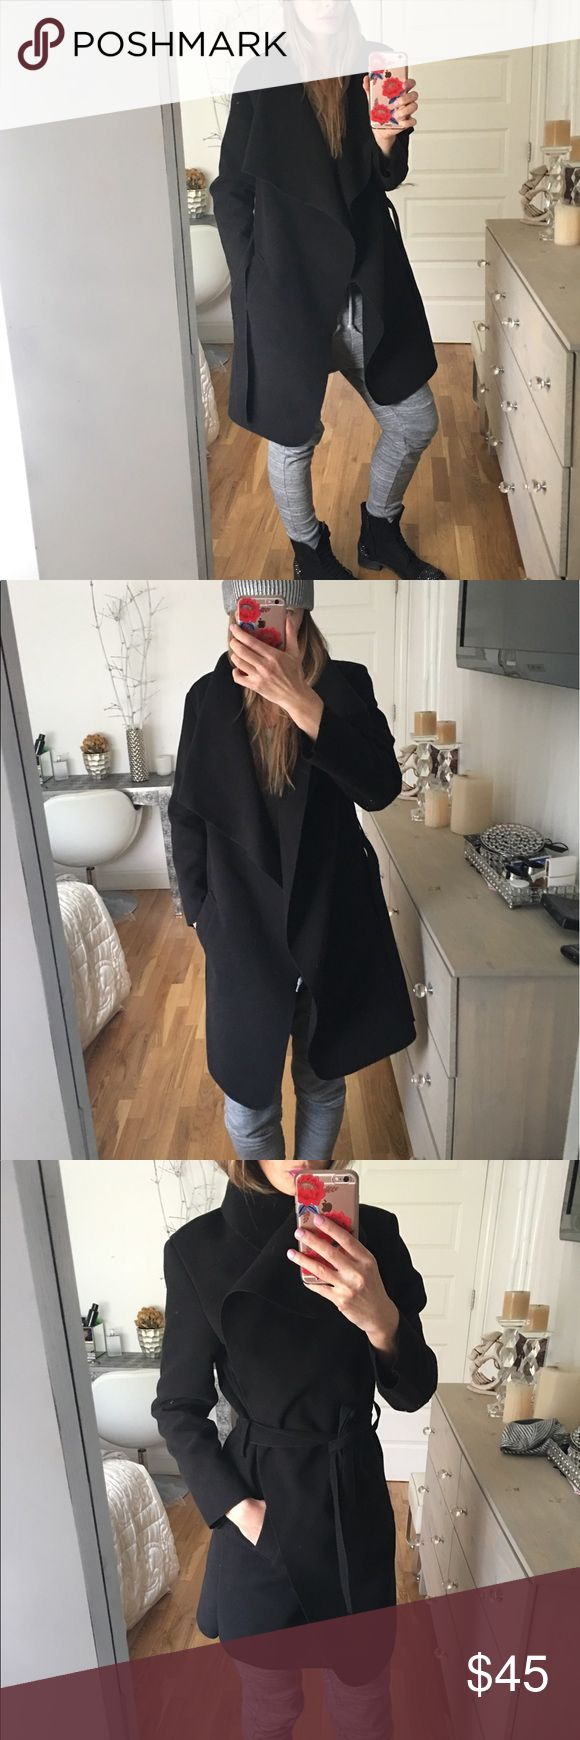 Black waterfall coat Black waterfall coat is soft and cozy. Has pockets and belt, no lining. It's great for spring and fall! Bought it in Paris!!! Made in France. Size: one fits most. Jackets & Coats